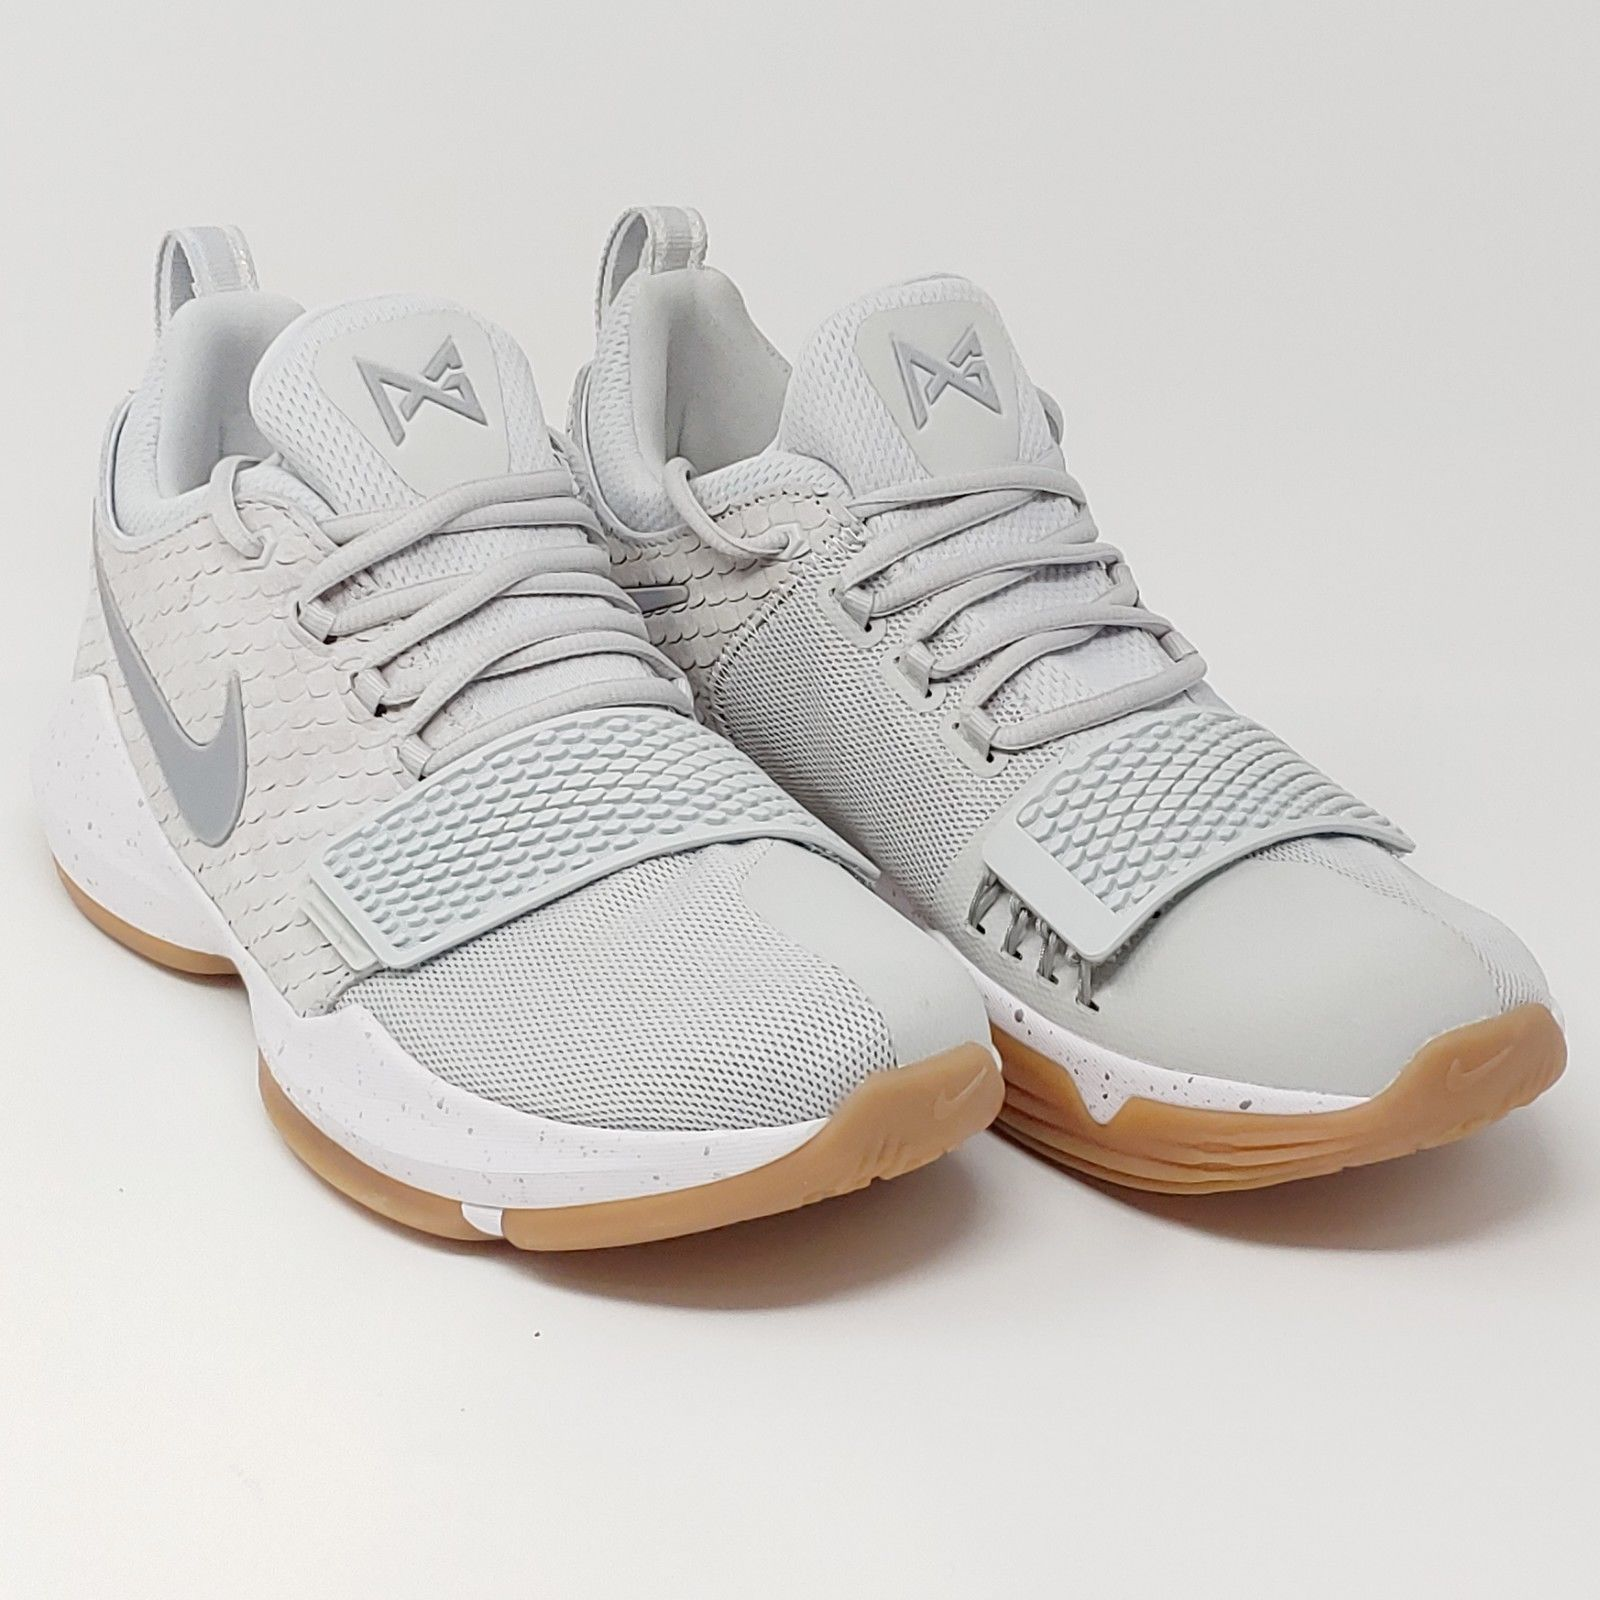 online retailer d3a2a 74bf1 ... Nike Paul George PG1 Pure Platinum Wolf Grey Basketball Sneakers Mens  Size 9.5